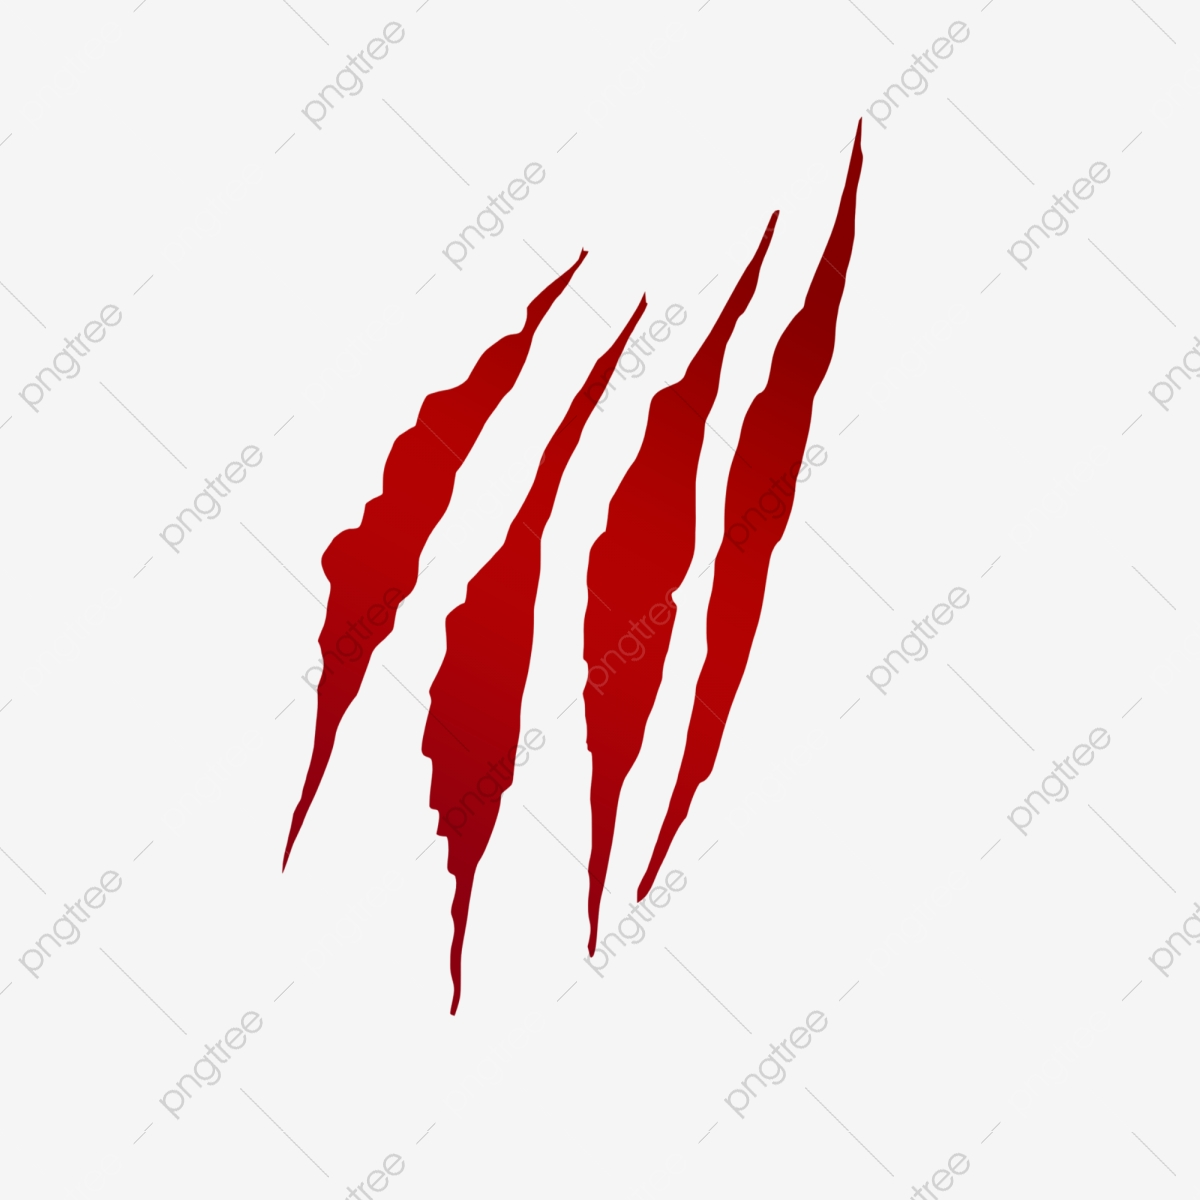 Blood Claw Scratch Wound Terrifying Lion Nails Png Transparent Clipart Image And Psd File For Free Download 6 watchers2.4k page views17 deviations. https pngtree com freepng blood claw scratch wound 5247588 html